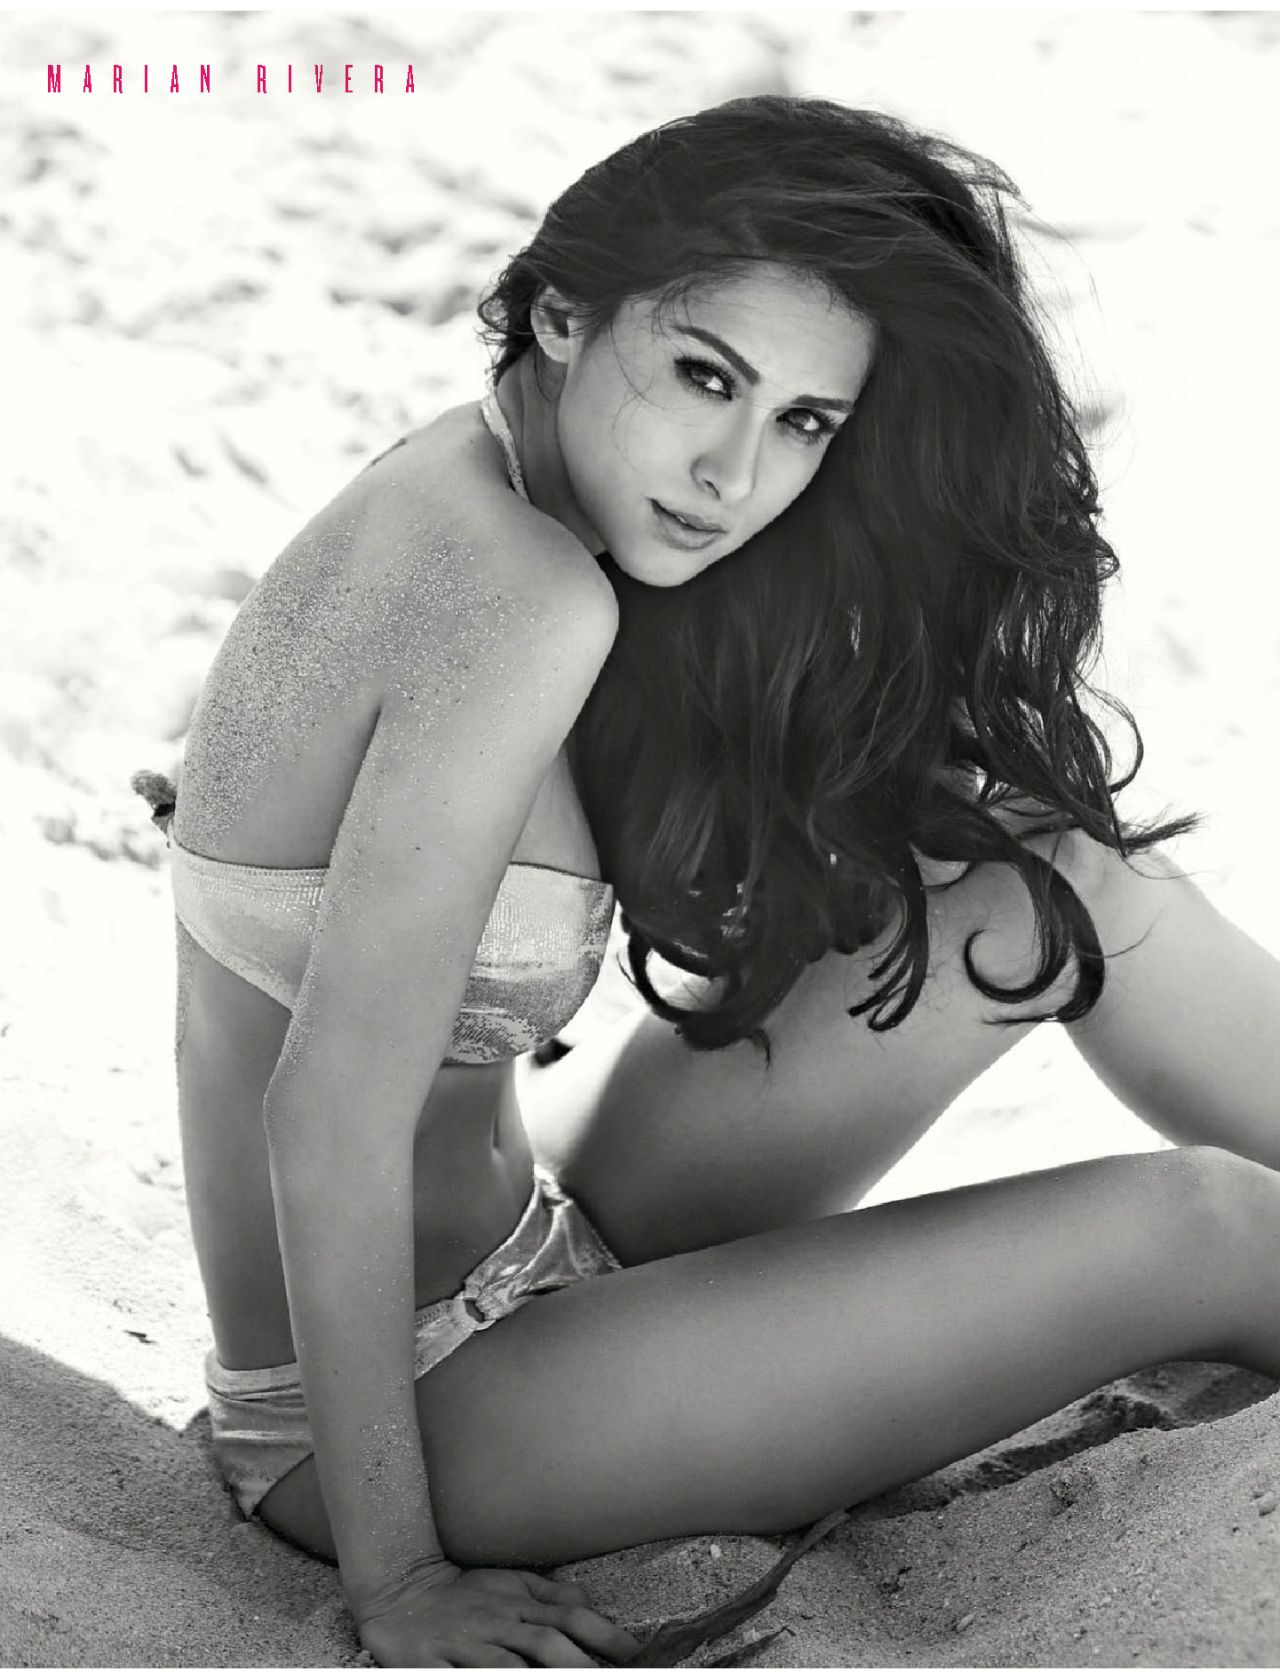 Understood Marian rivera fhm cover